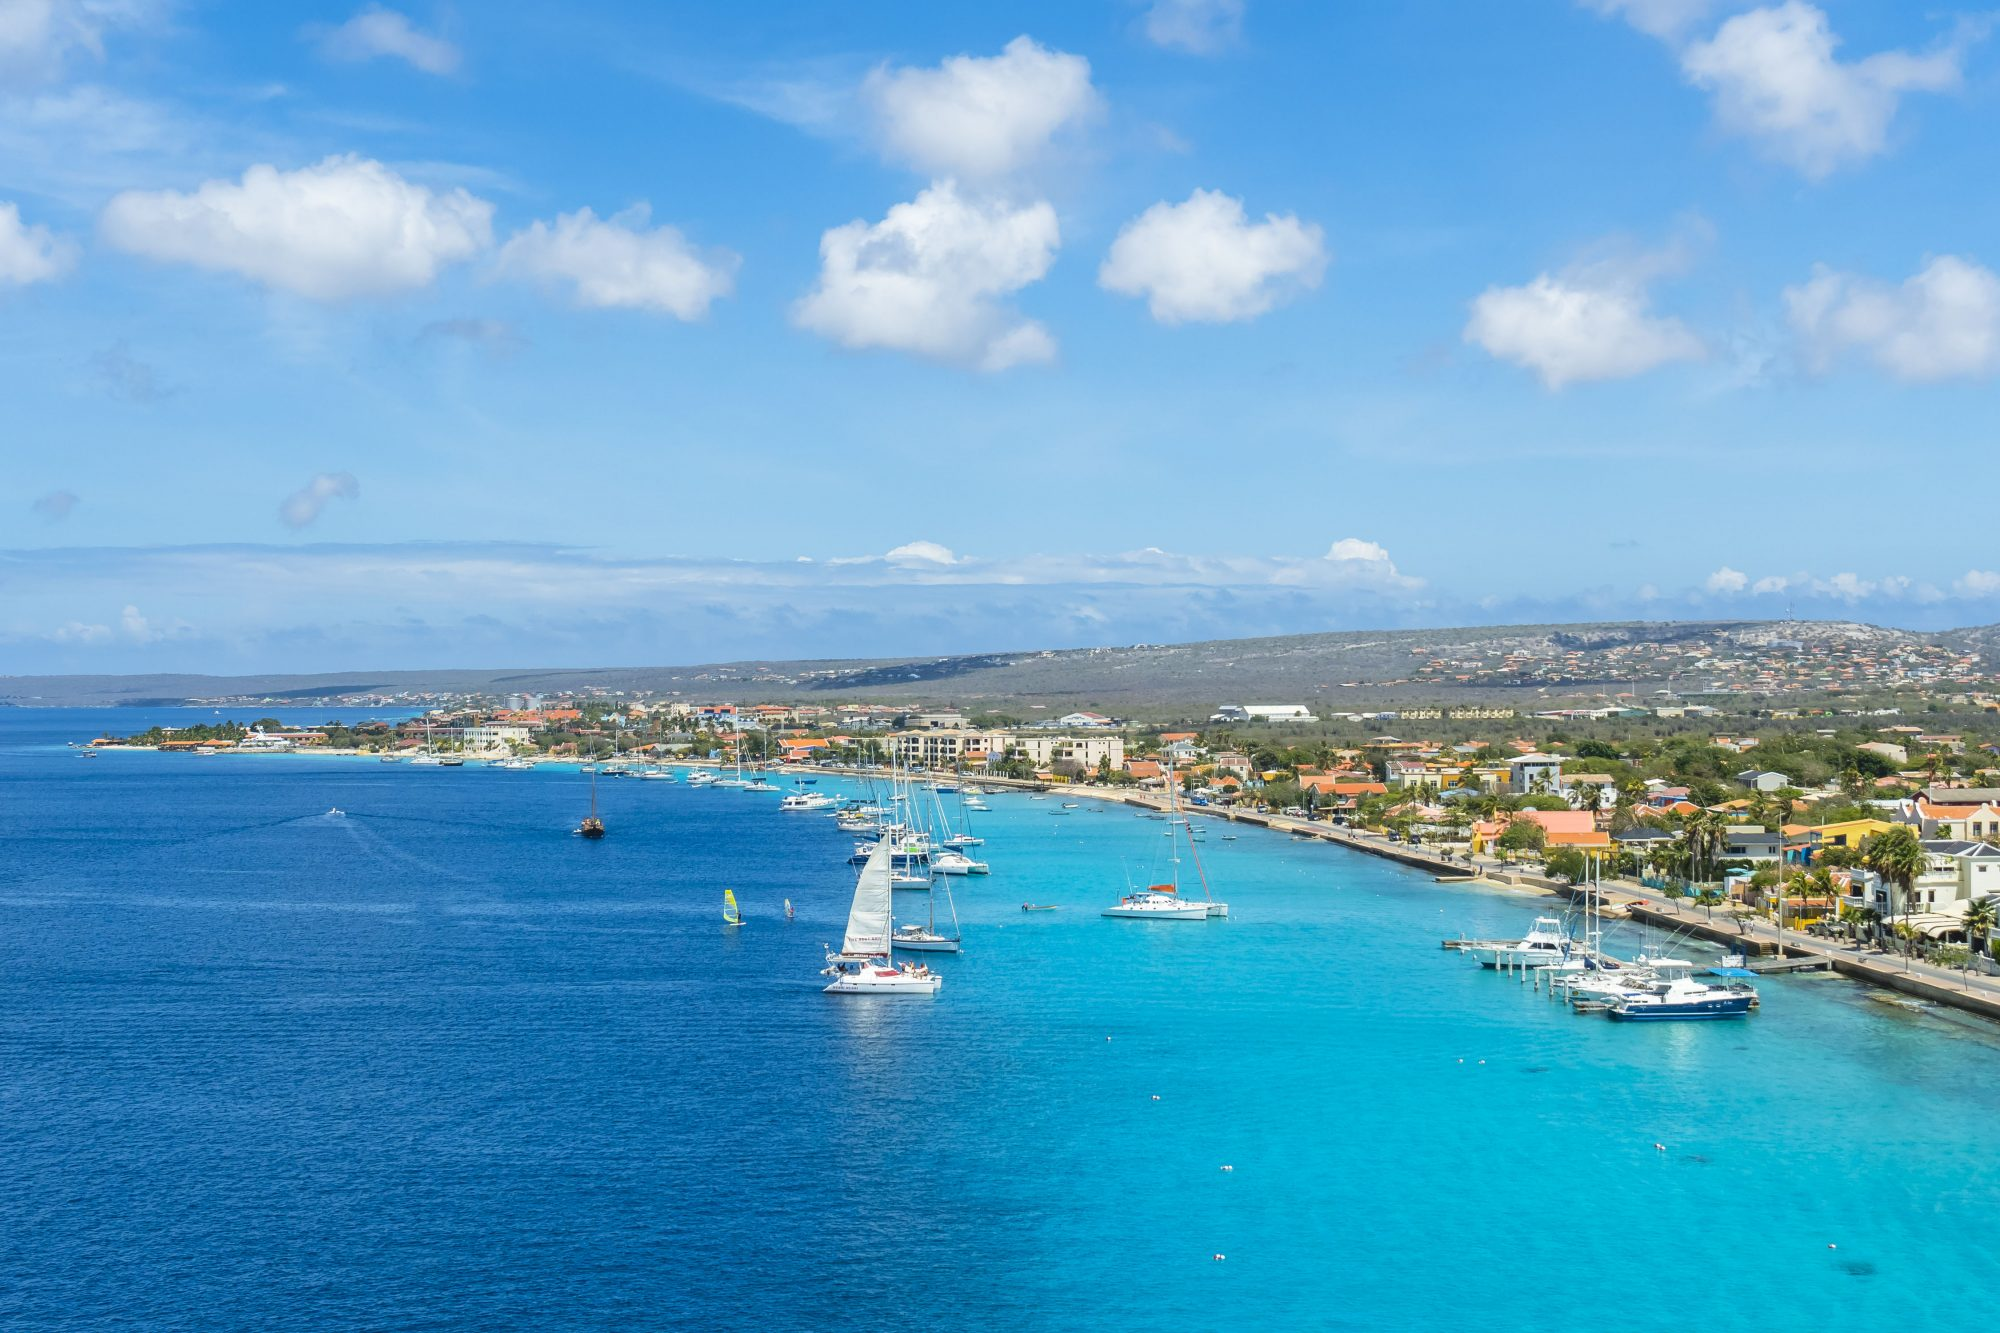 Caribbean beach, windsurfers paradise, calm and shallow waters. Many windsurfers in the sea